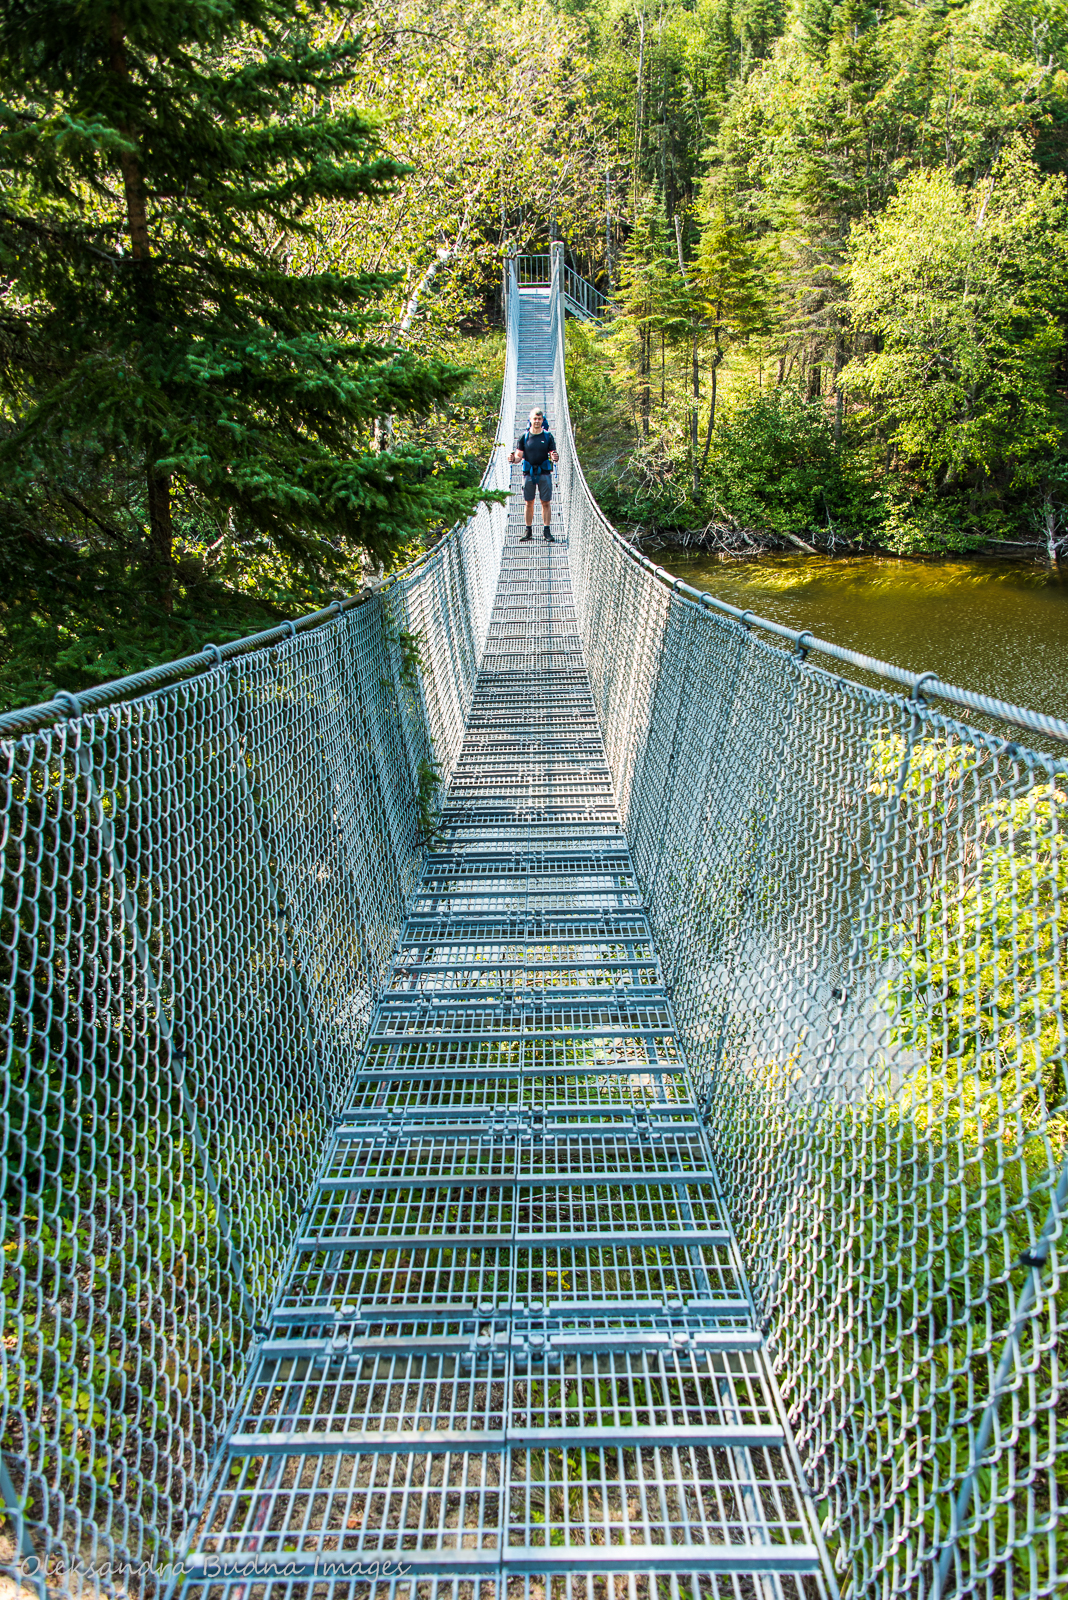 Suspension bridge over Willow River along the Coastal Hiking Trail in Pukaskwa